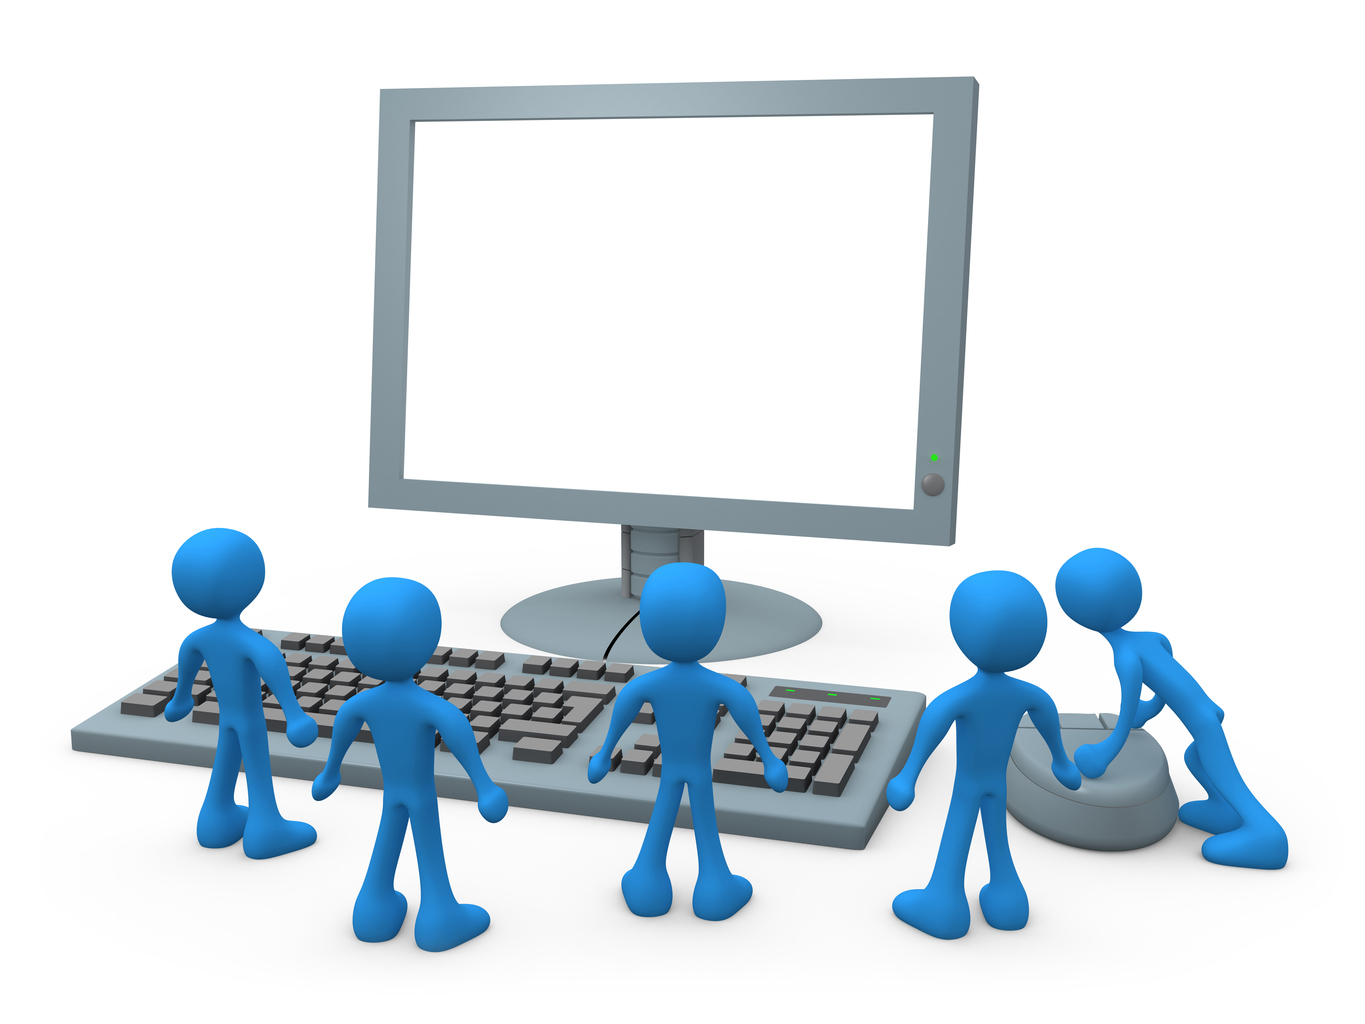 Computer Based Training Clipart